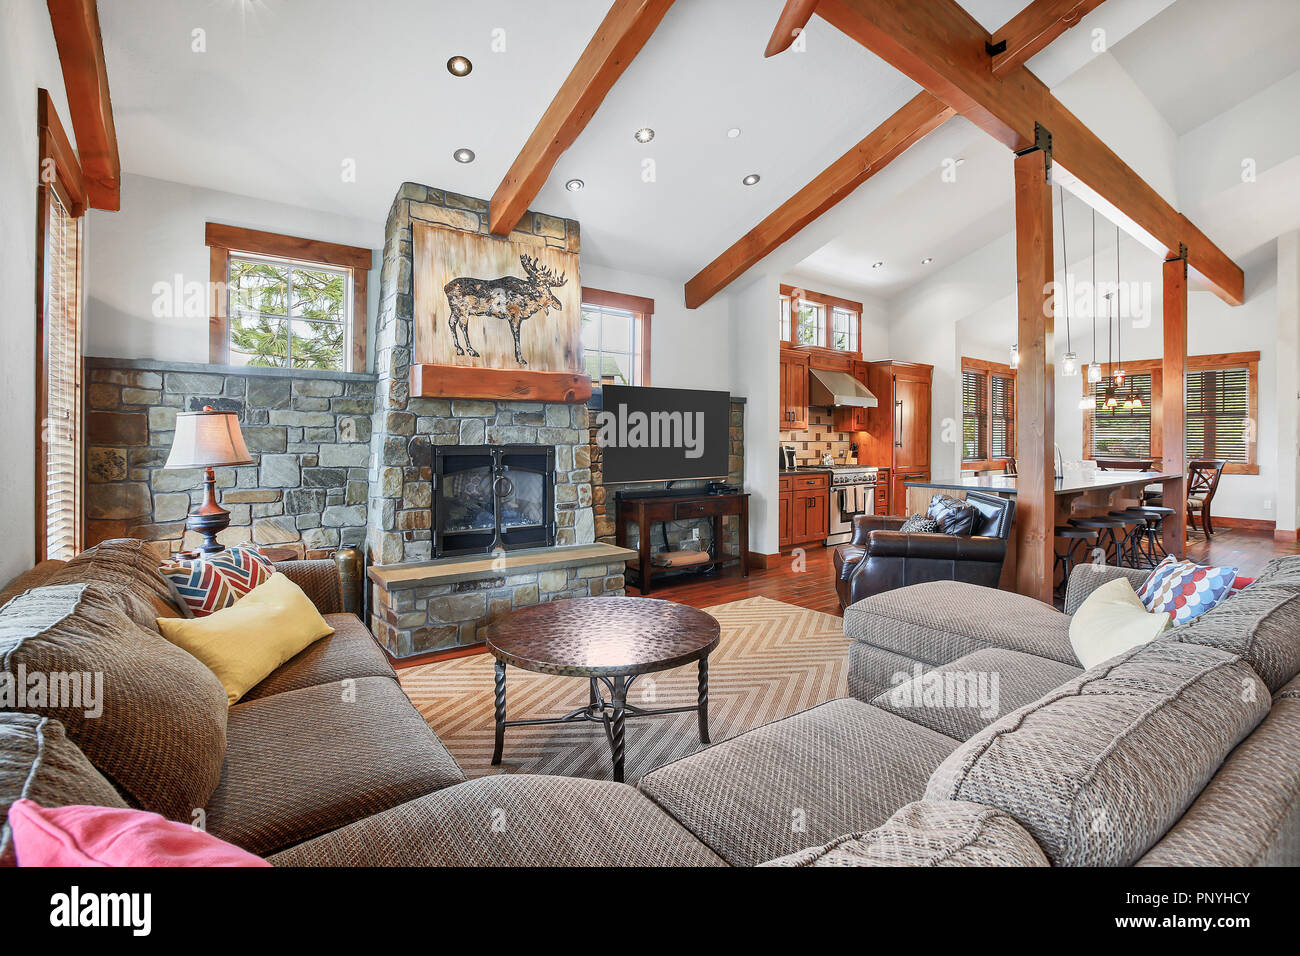 Beautiful Open Plan Home With A Well Styled Living Room, Stone Fireplace, Vaulted  Ceiling With Beams And Hardwood Floor.